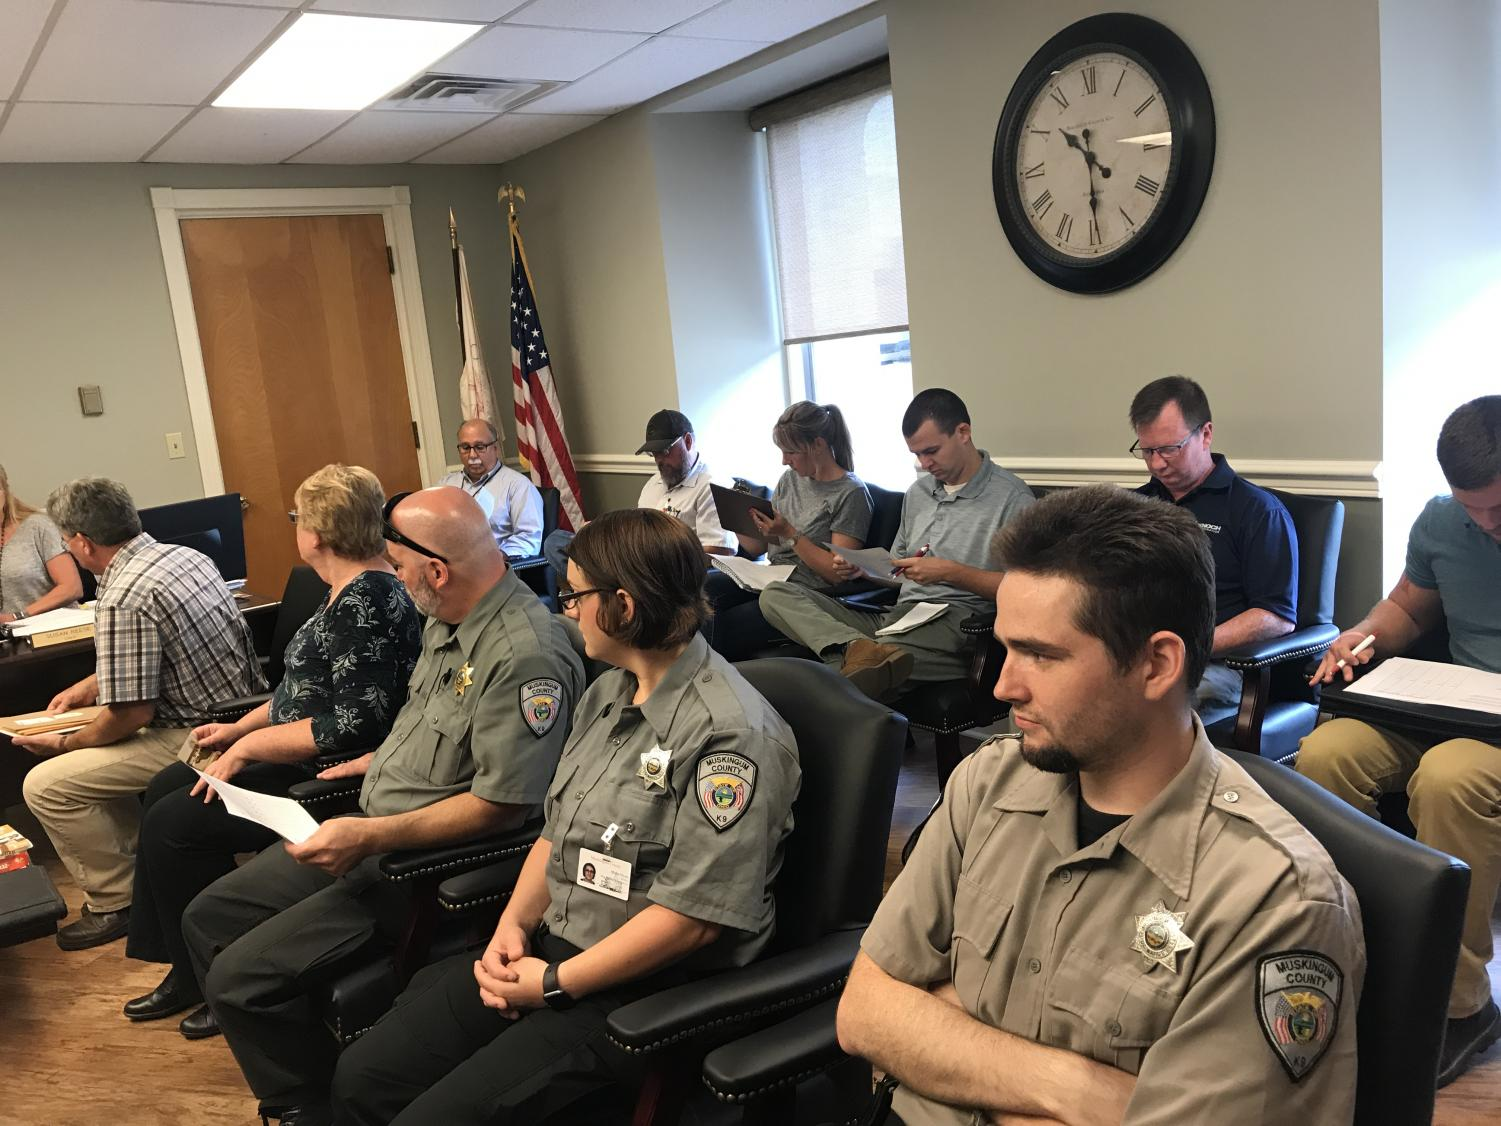 Thursday morning, the Muskingum County Commissioners' meeting drew a crowd of people awaiting to see who would be awarded the bid to complete the new dog warden facility construction.